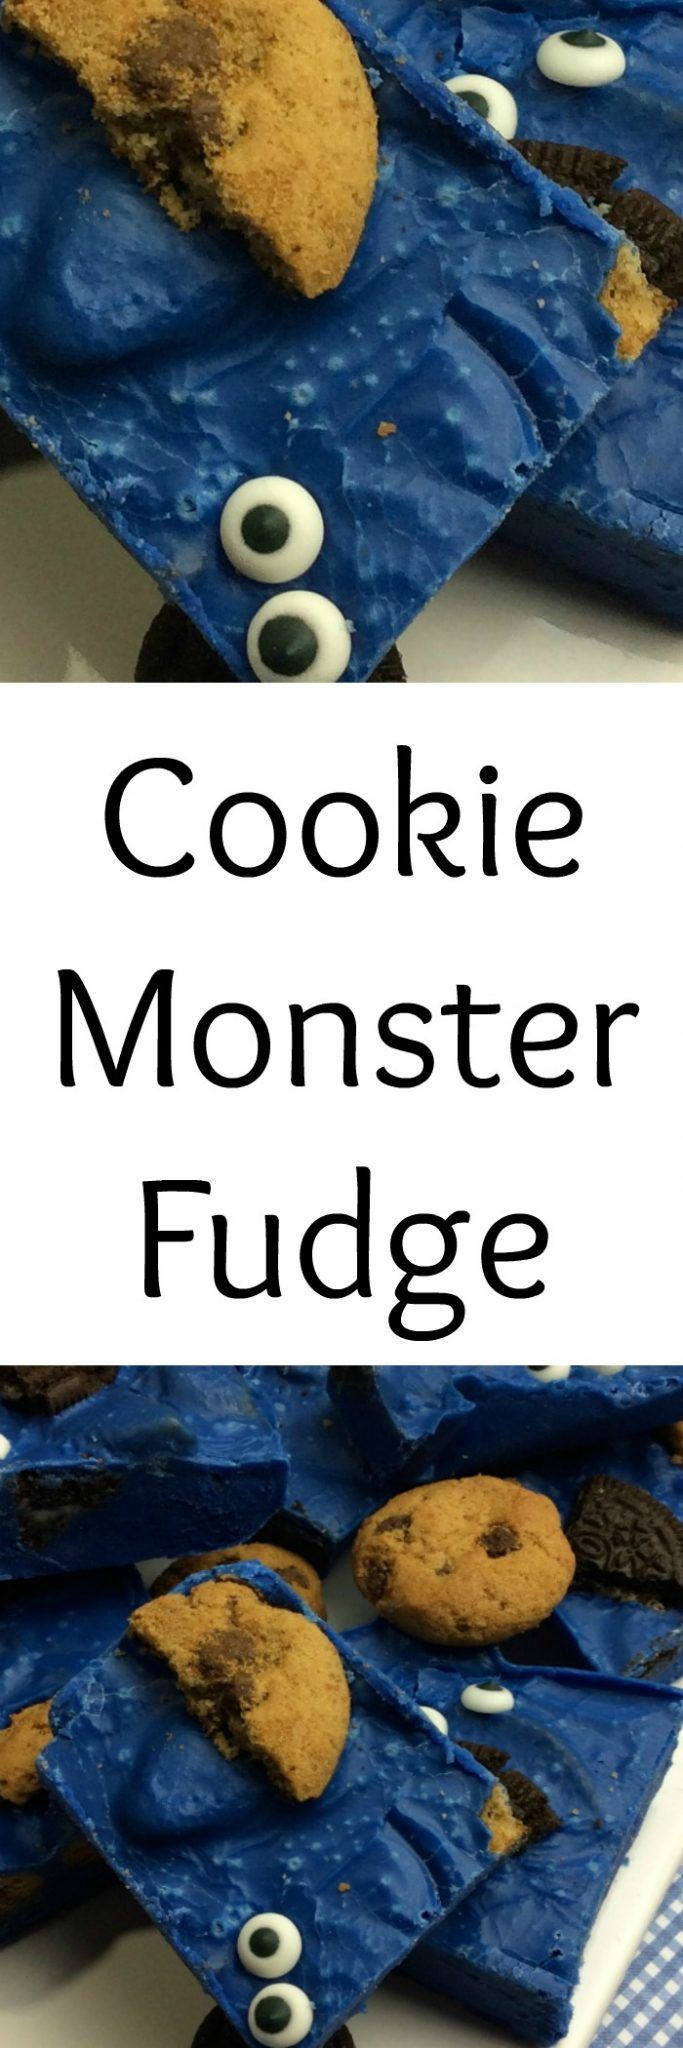 Want a Cookie Monster treat that will anyone over? This Cookie Monster fudge is easy to make, tastes amazing and is the perfect Cookie Monster treat.